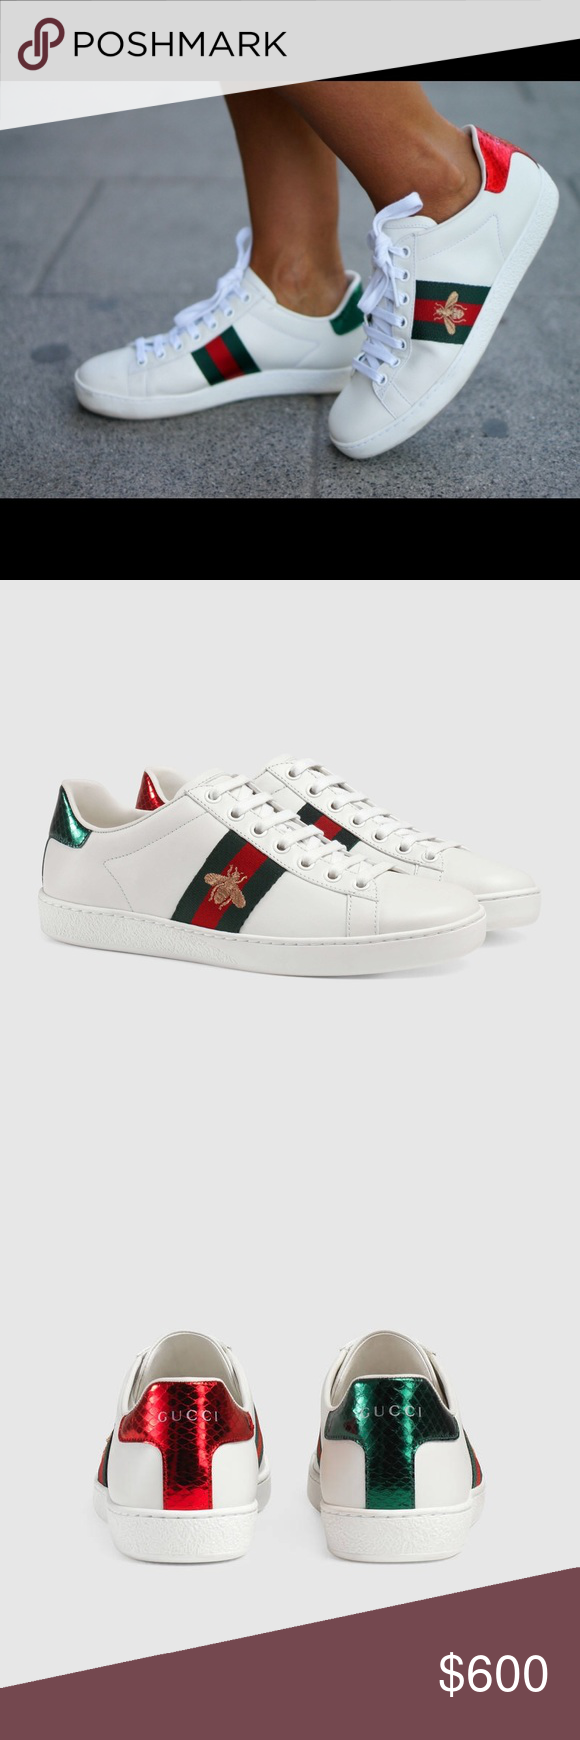 80557d924 Authentic Brand New Gucci ACE sneakers Authentic Brand New Gucci ACE  sneakers   White leather with green and red Web and gold thread-embroidered  bee ...